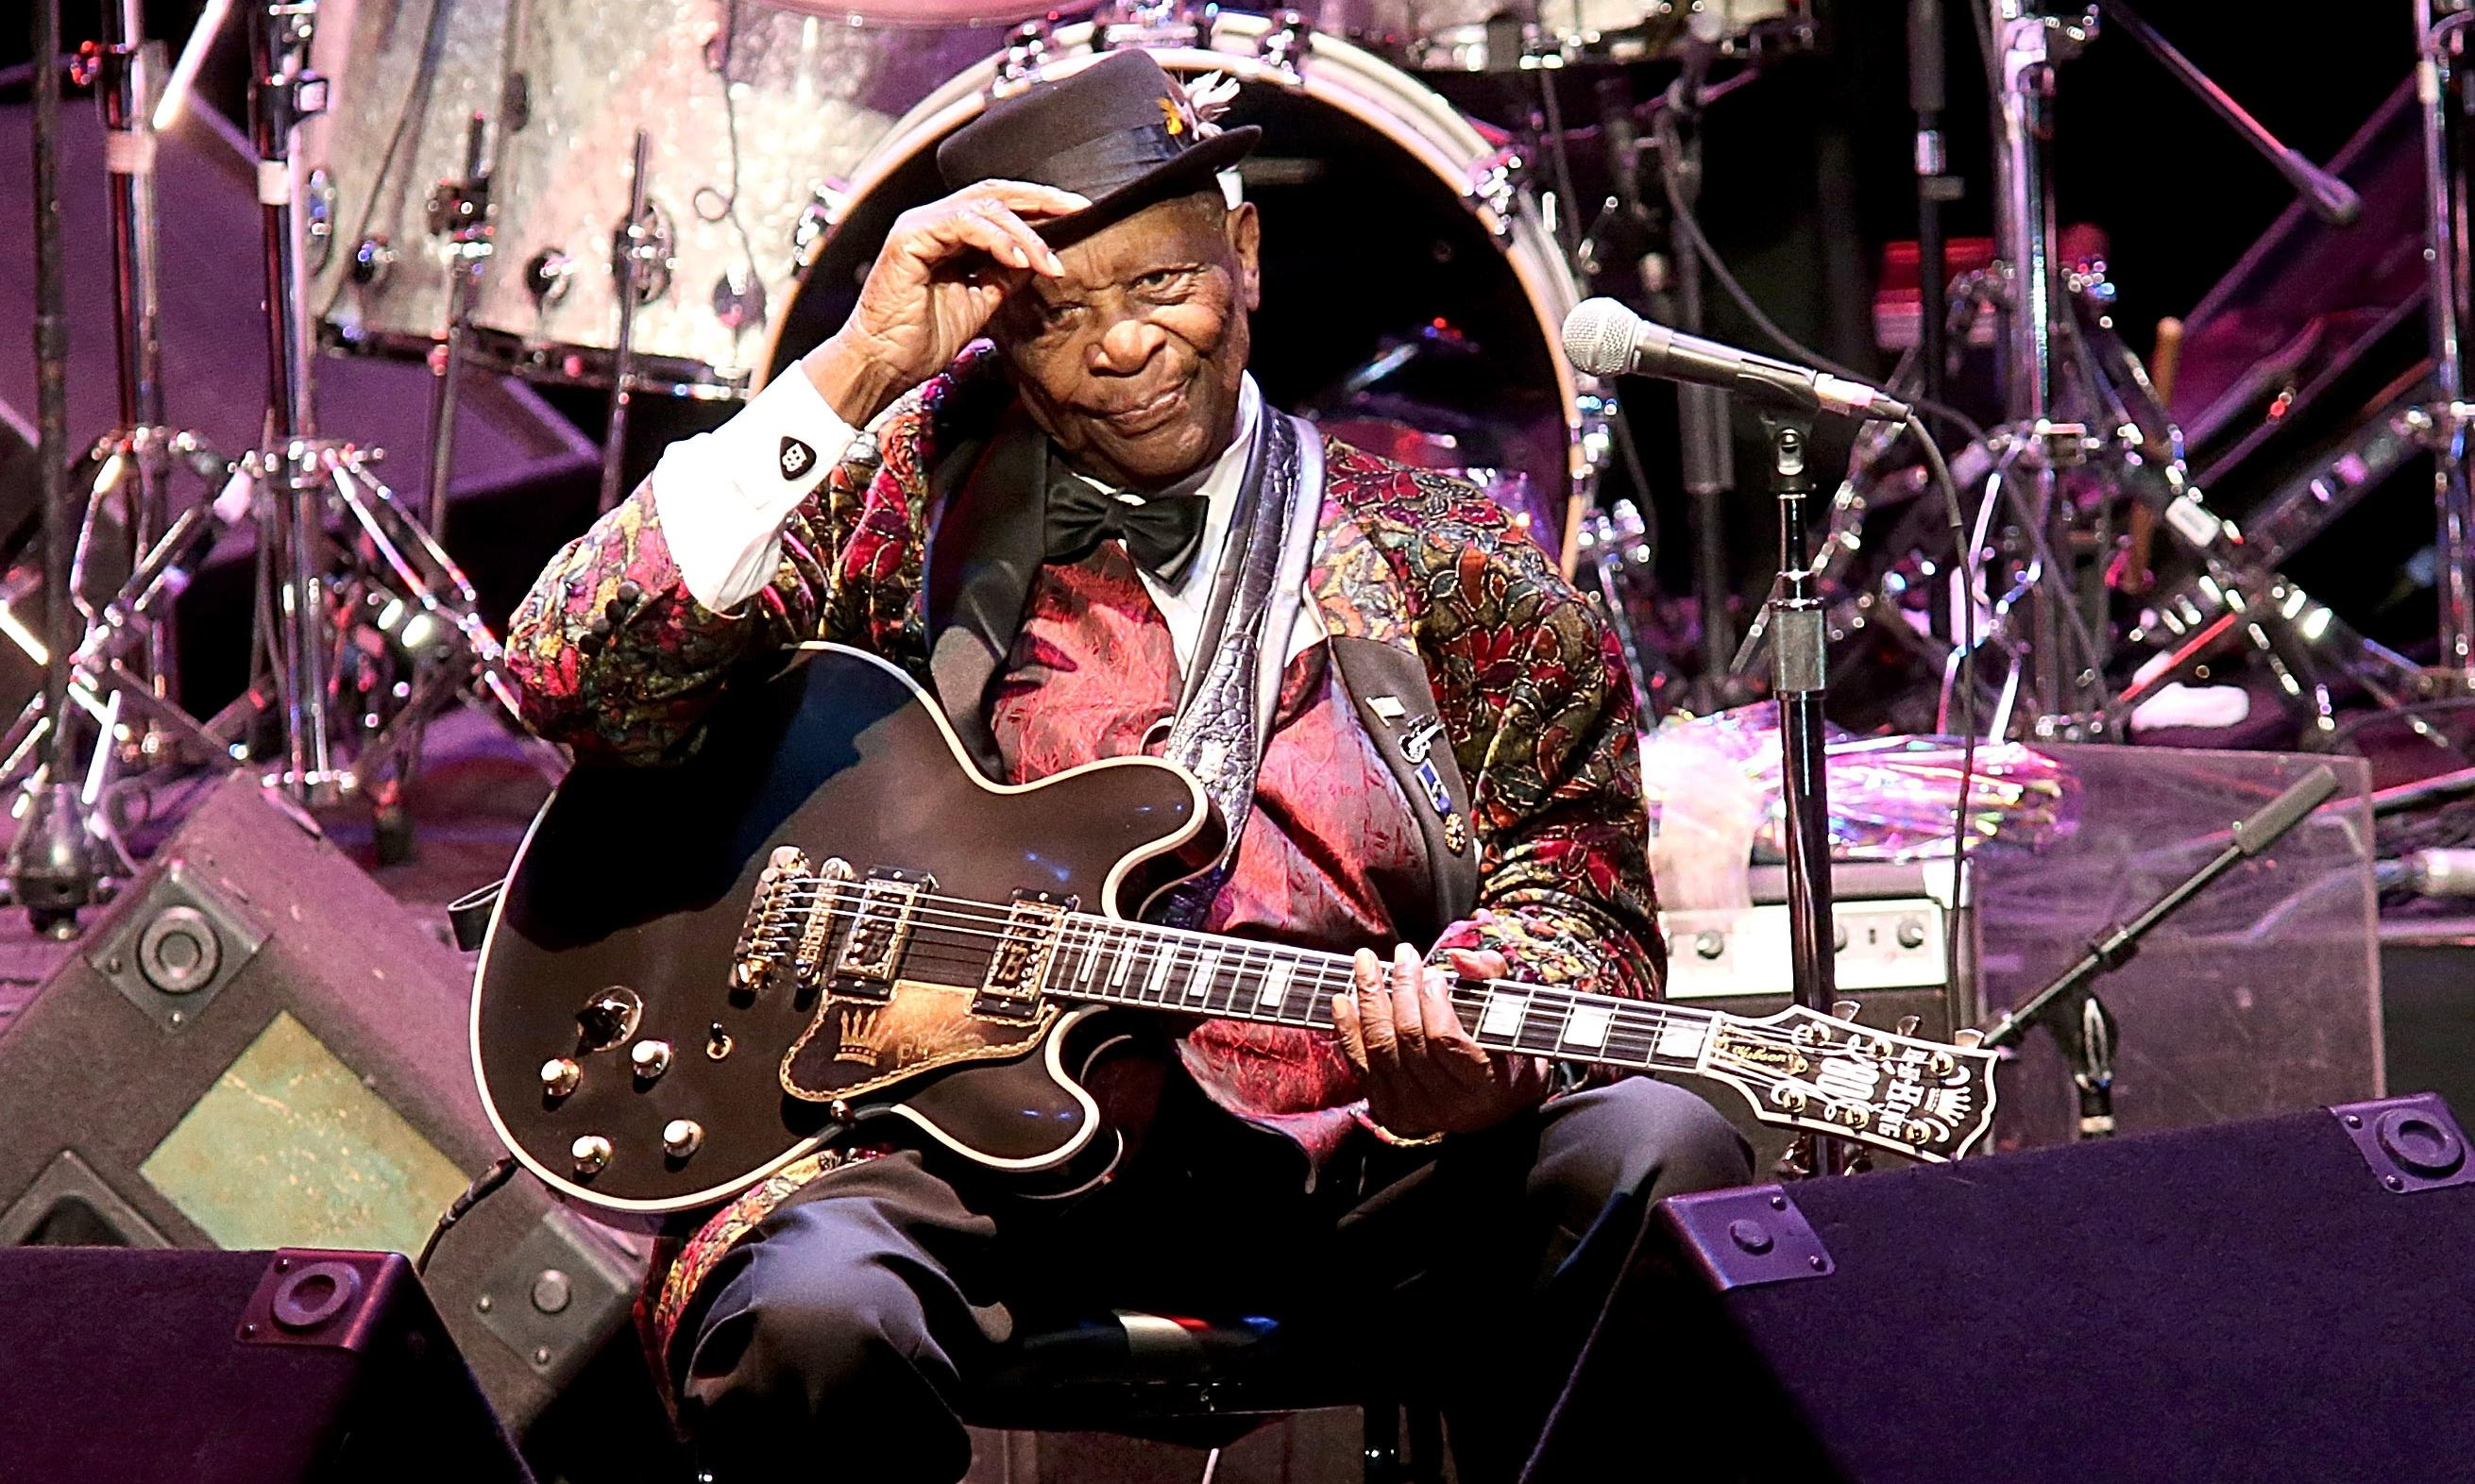 BB King's 'Lucille' guitar to be auctioned along with other personal items